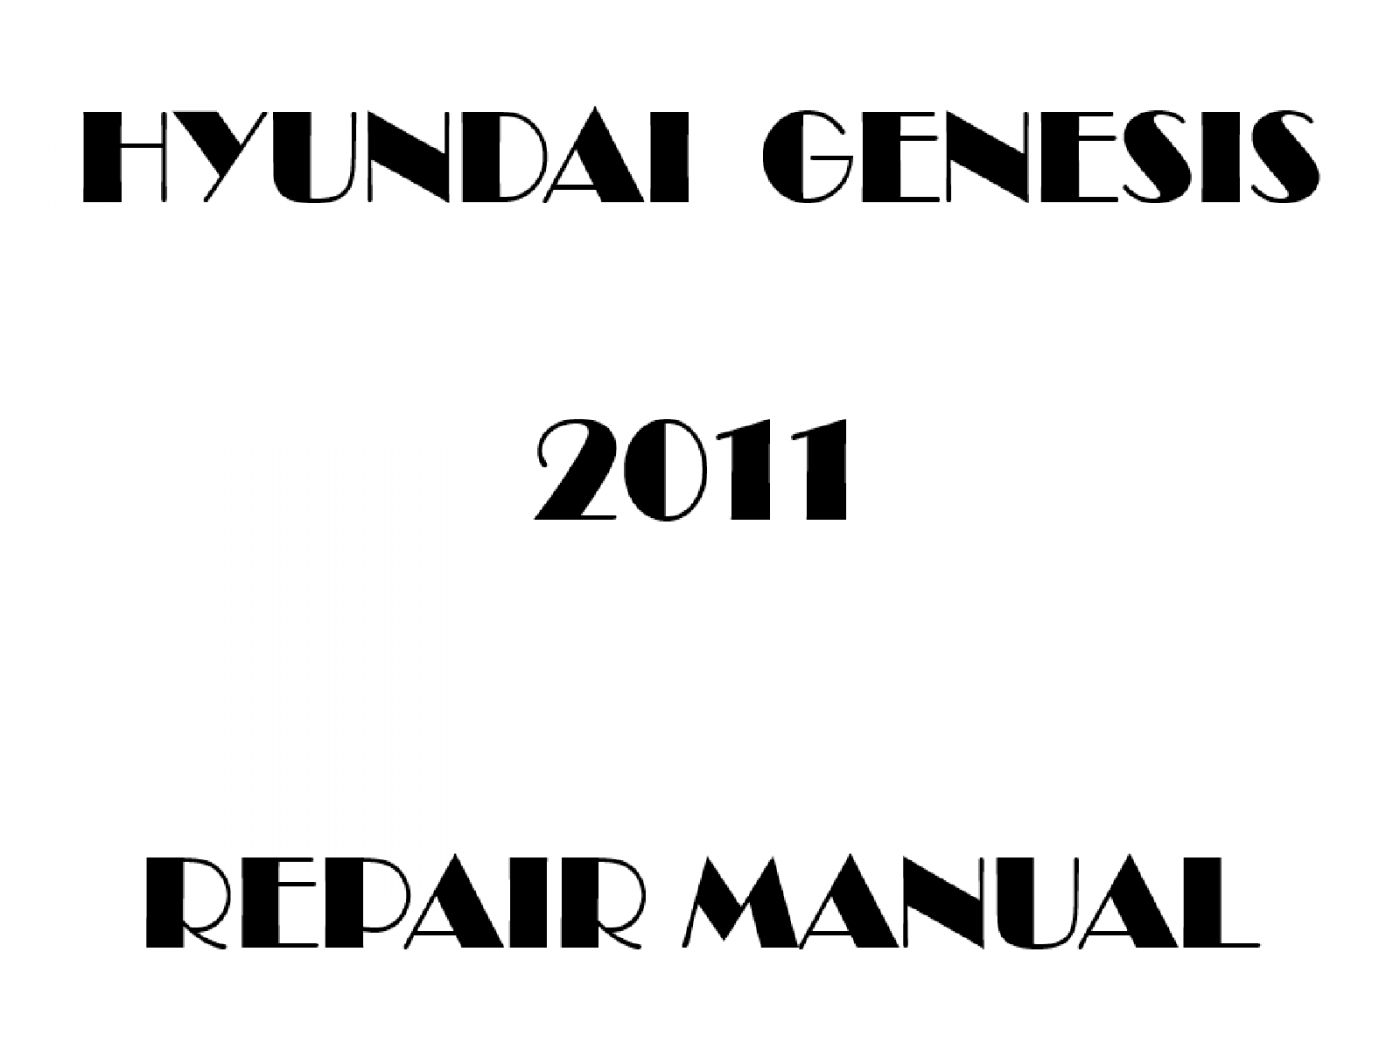 2011 Hyundai Genesis repair manual